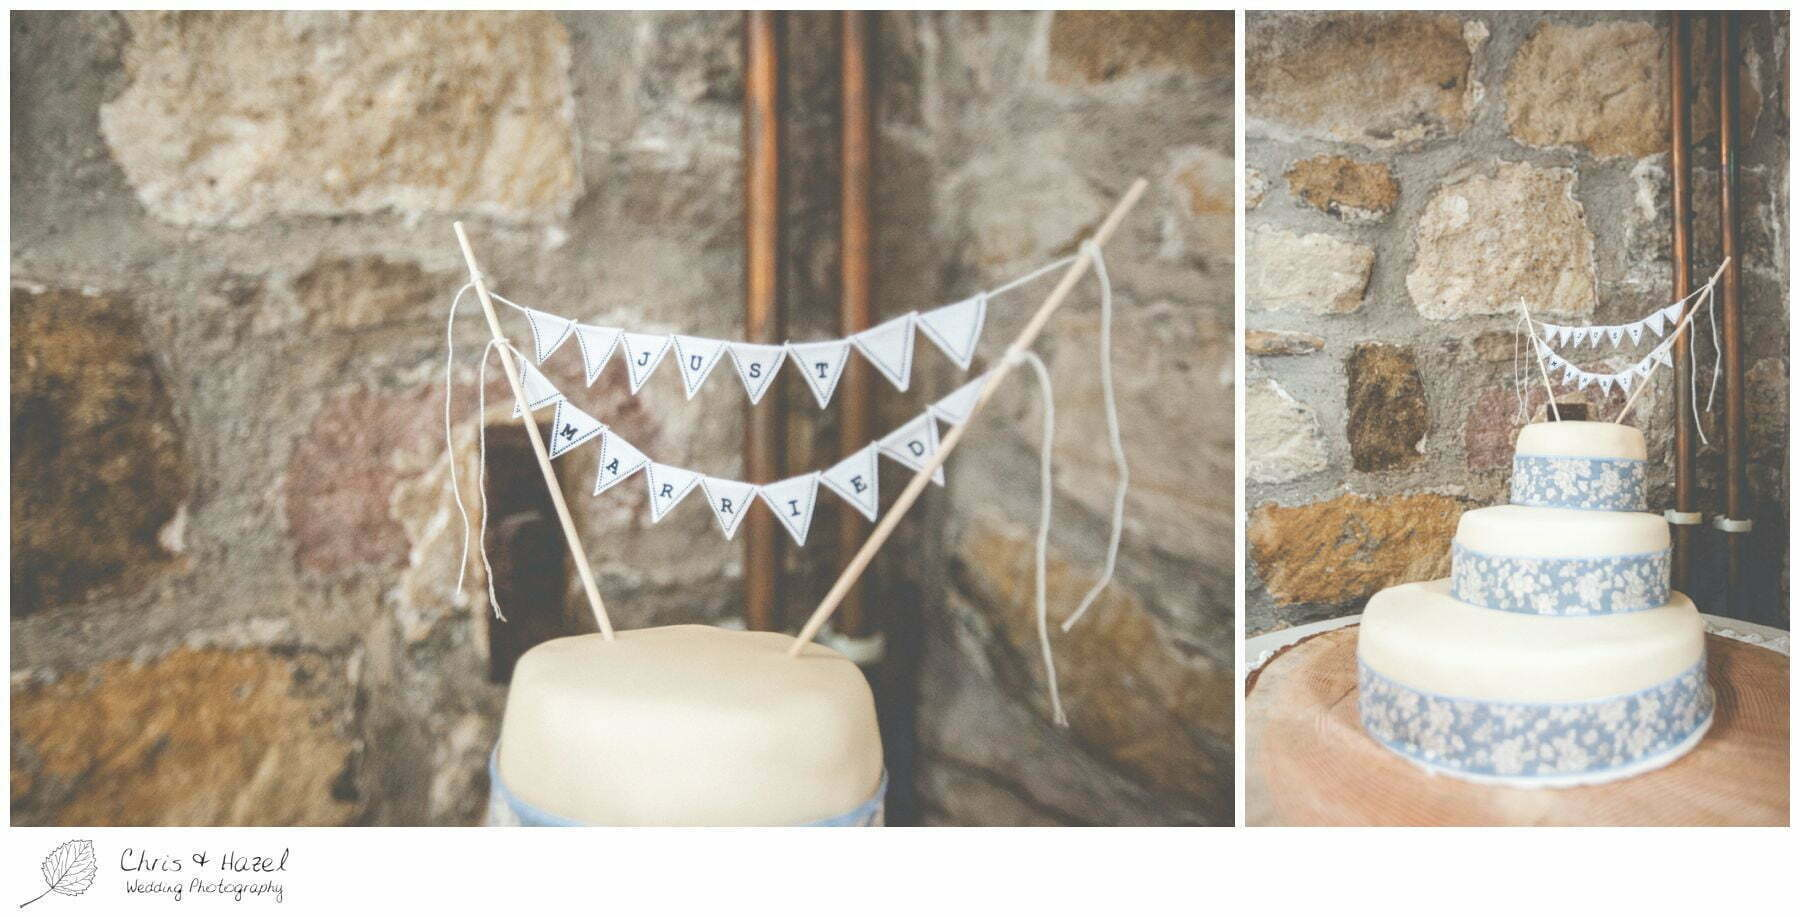 wedding cake bunting, wedding cake name banner, eco wedding, love letters, wedding, Eccup Wedding Photographer, Lineham Farm, Wedding Photography Leeds, Chris and Hazel Wedding Photography, Richard Wyatt, Laura Kelly